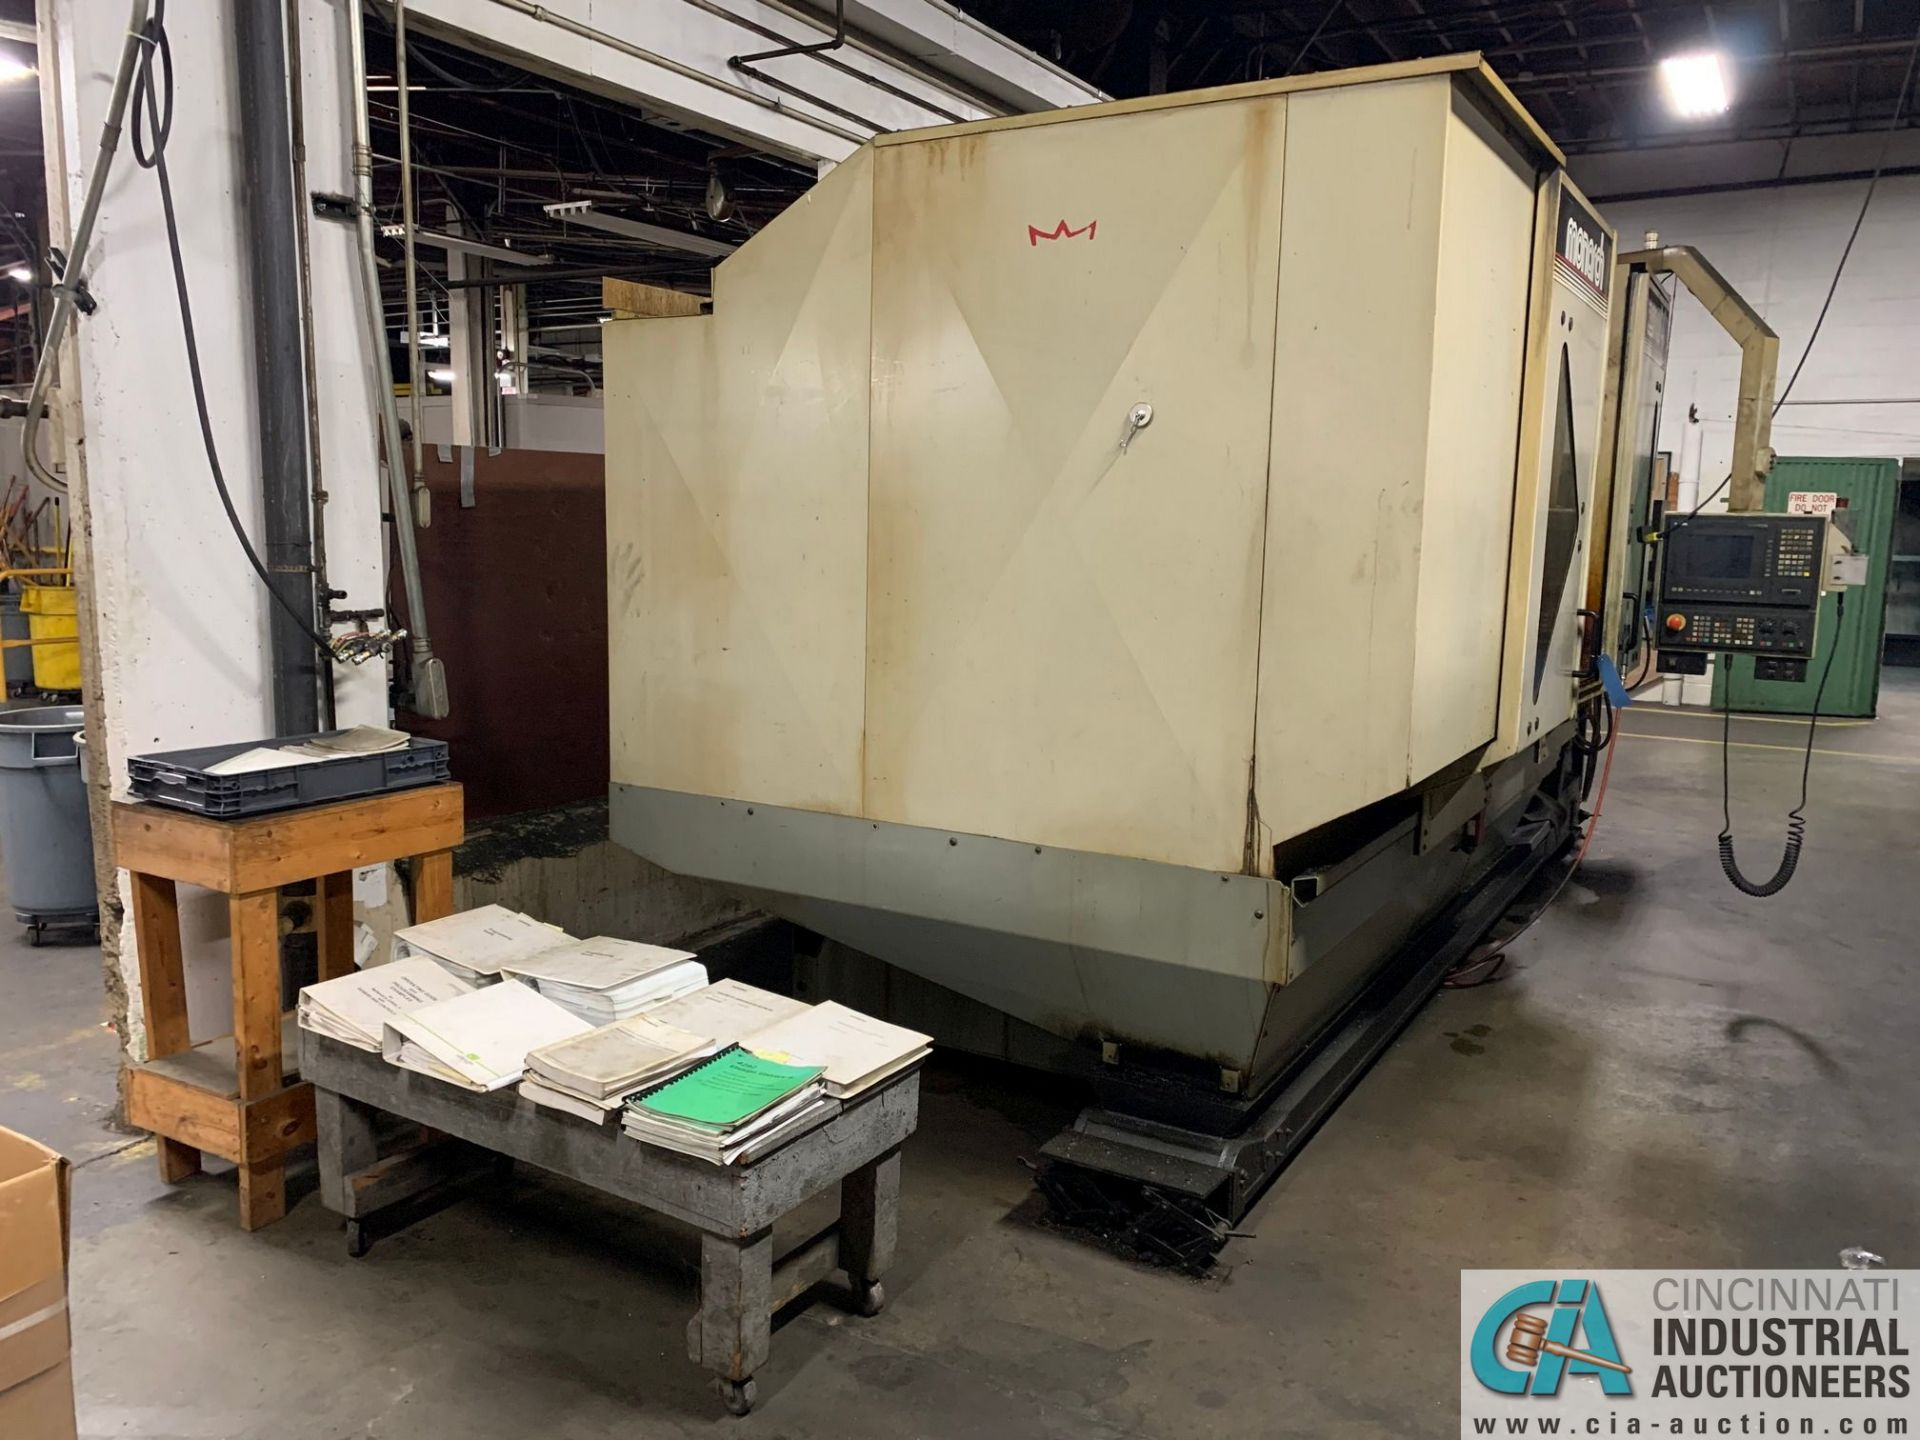 MONARCH UNISIGN TYPE UNIVERS 4 ZONALL 4 CNC VERTICAL MACHINING CENTER; S/N 99Z402, NO. 4292, - Image 8 of 11